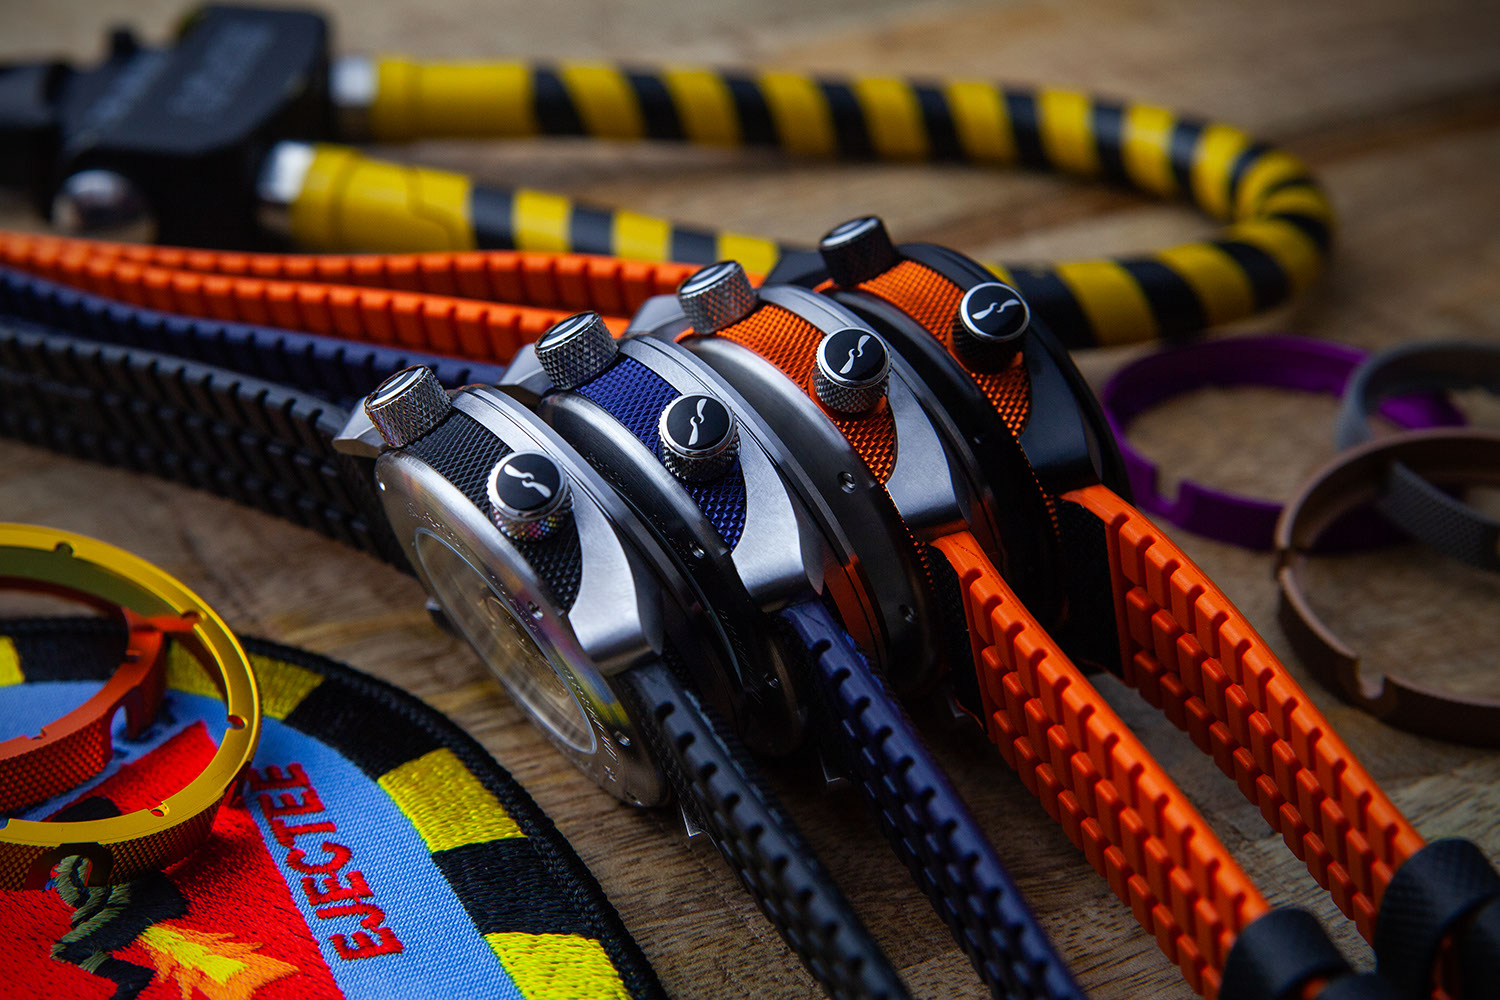 Bremont's new 'Chalgrove' watch strap selection for the updated 2020 MBII